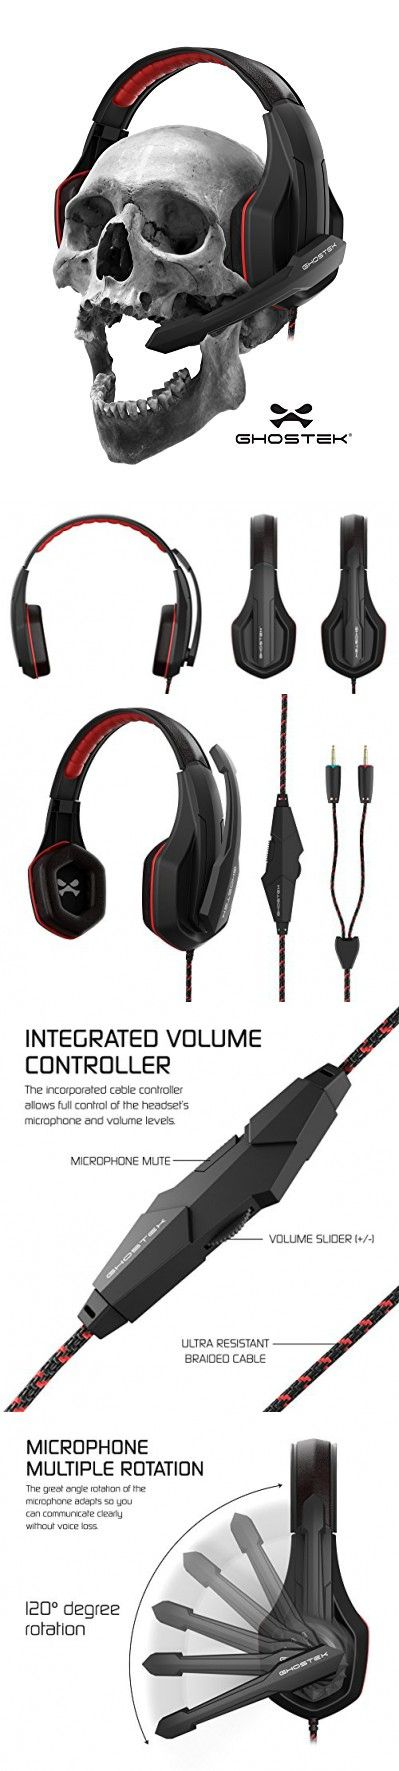 Ghostek Hero Series Gaming Headphones Over-Ear | 3.5MM Jack | PC Video Gaming |120° Microphone Rotation + Mute Switch | Integrated Volume Control | Ultra Resistant Braided Cable (Red)